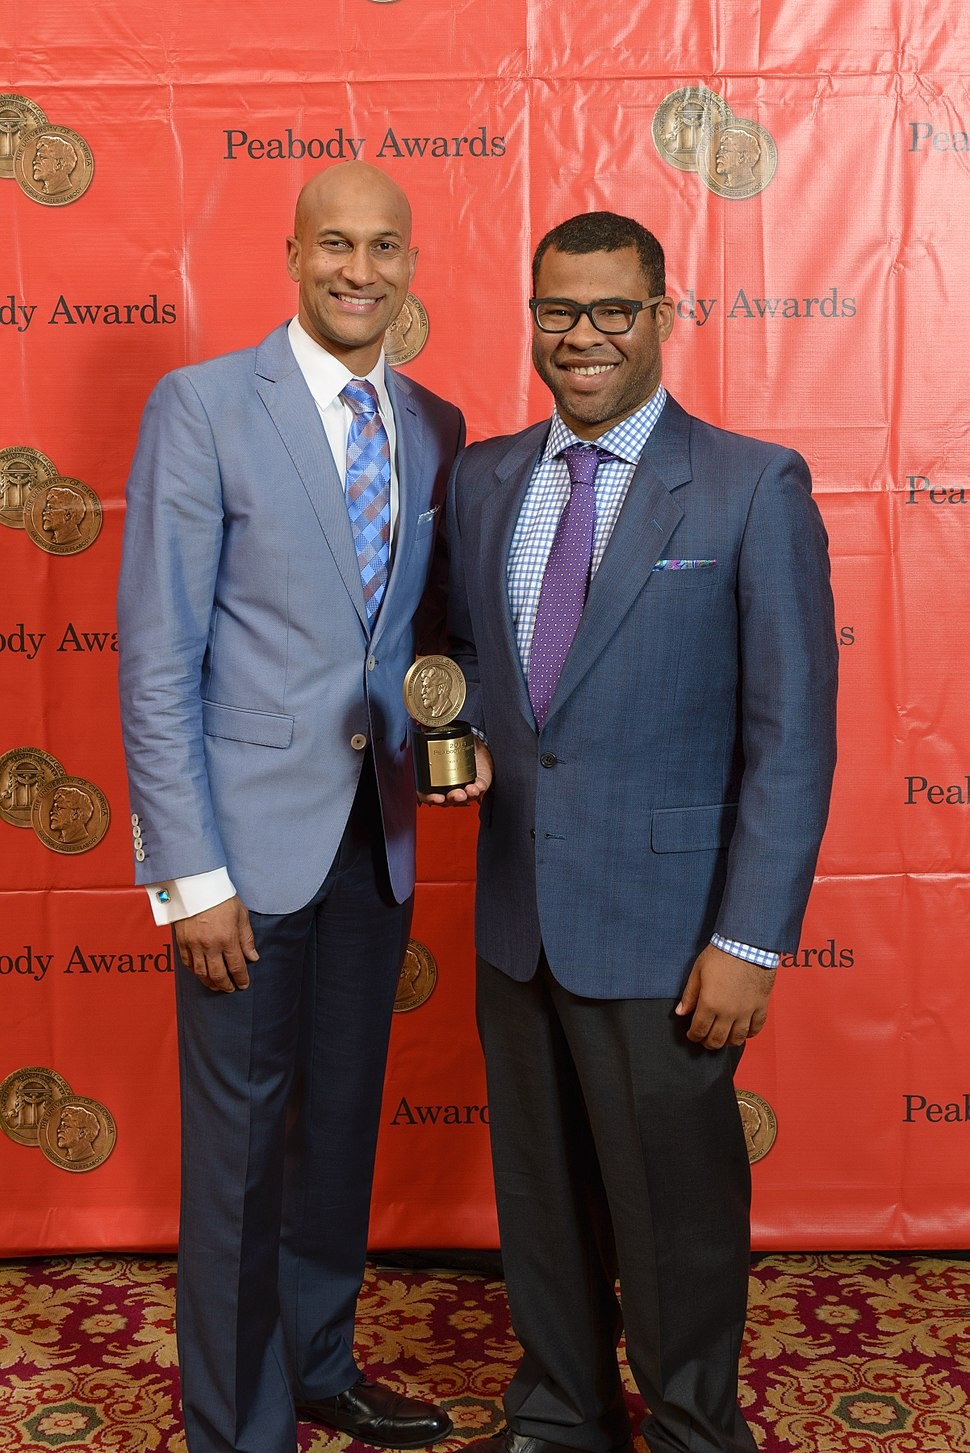 Keegan-Michael Key and Jordan Peele 2014